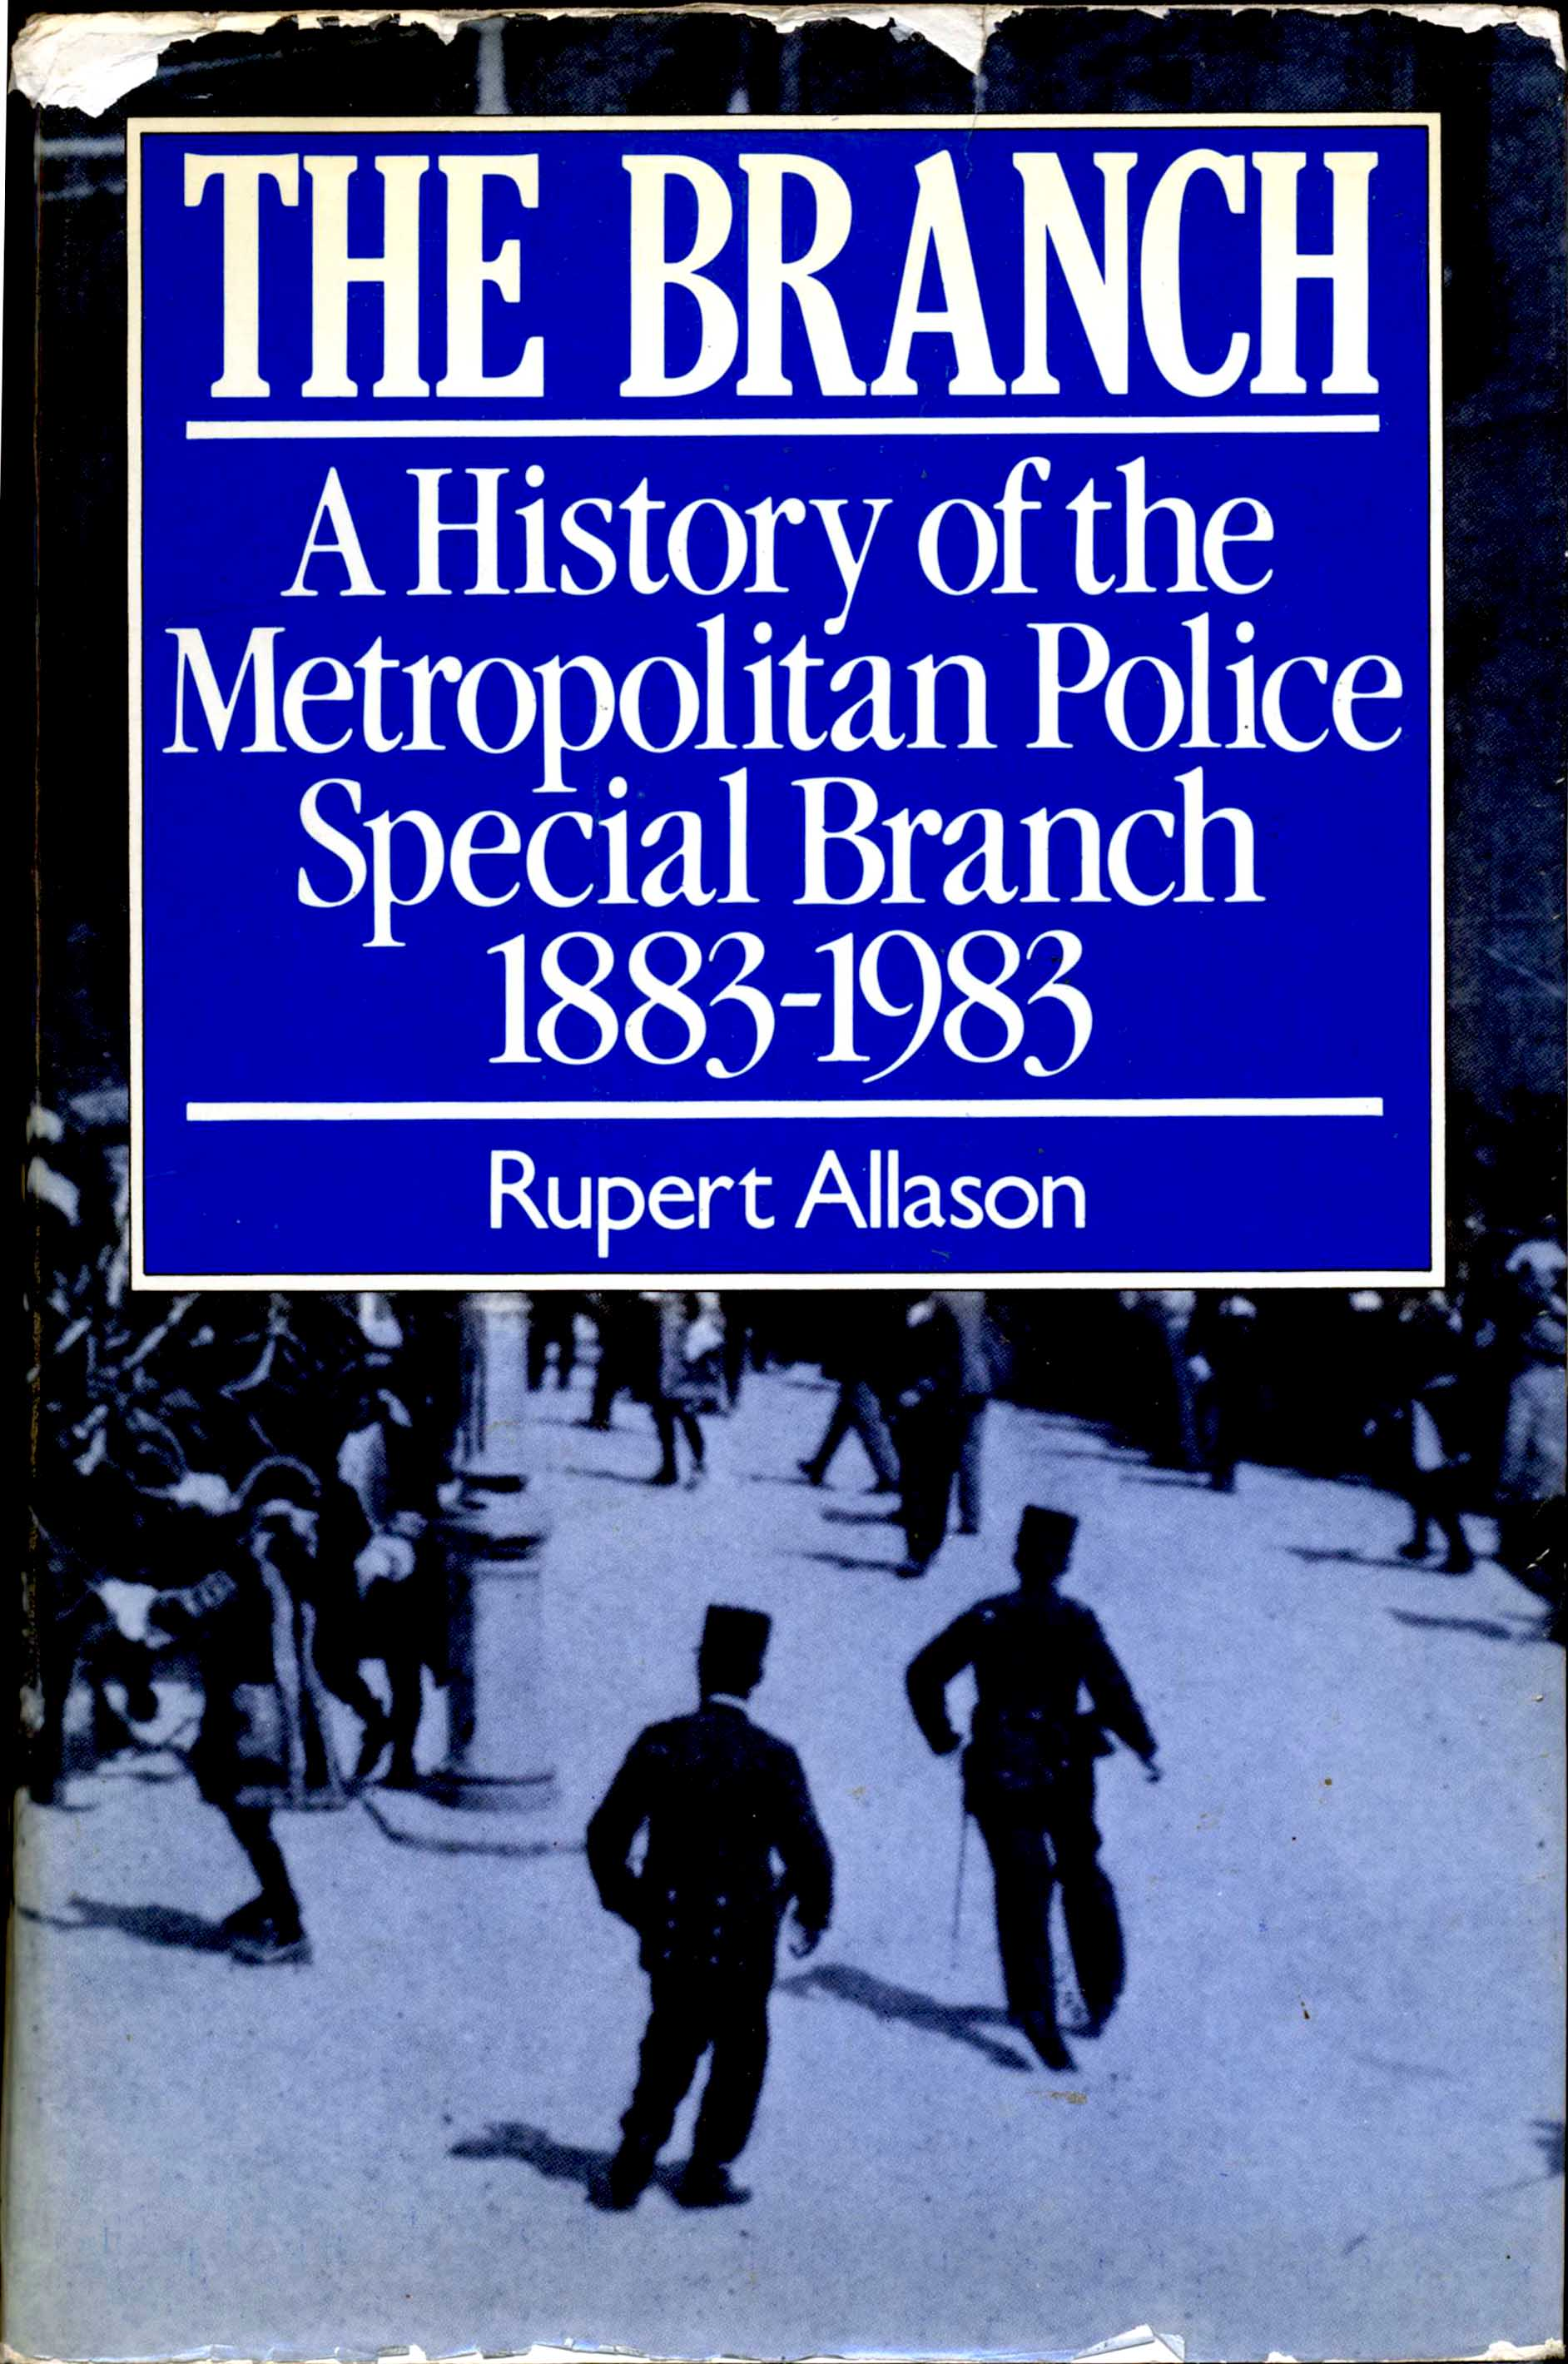 The Branch. A History of the Metropolitan Police Special Branch 1883-1983